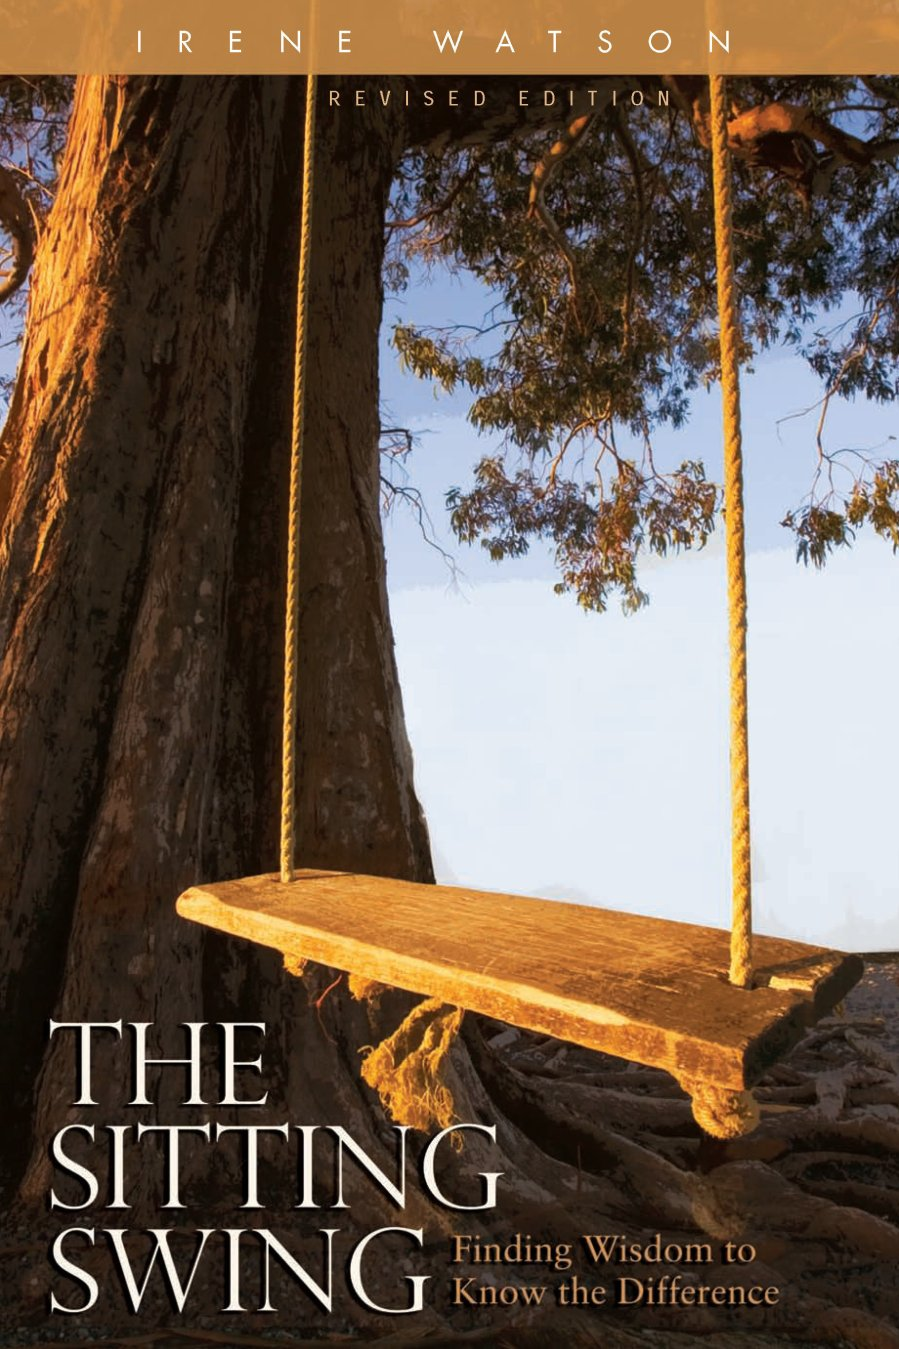 The Sitting Swing: Finding the Wisdom to Know the Difference 978-1-932690-67-5